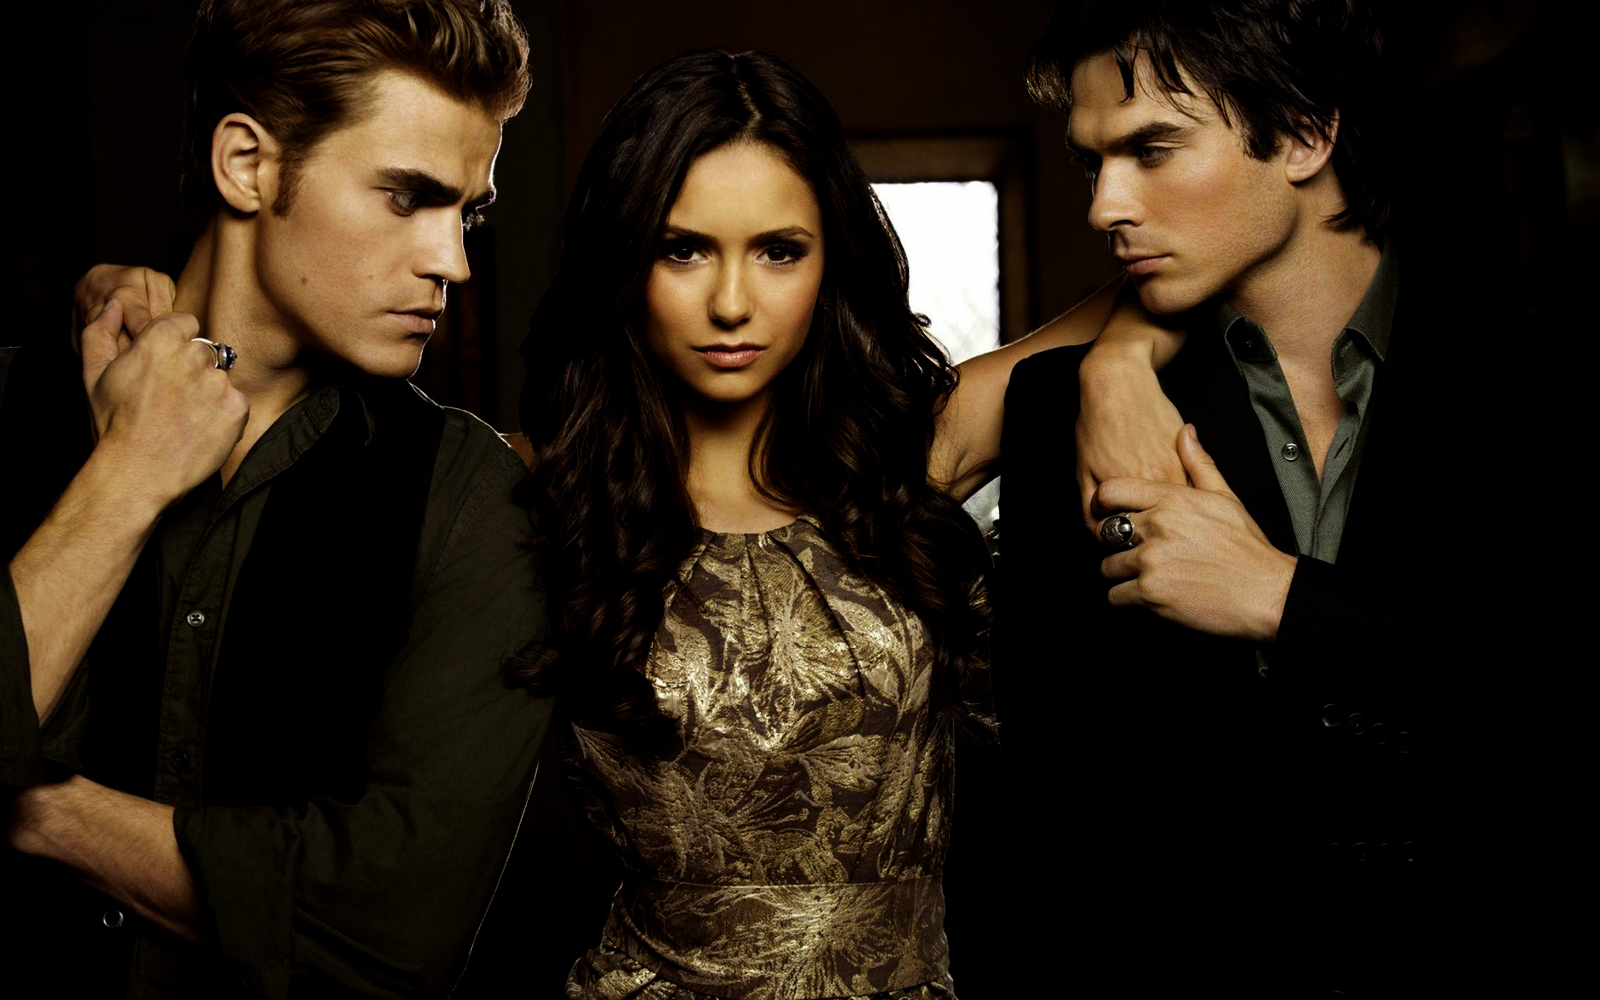 Vampire Diaries Characters HD Wallpapers| HD Wallpapers ...